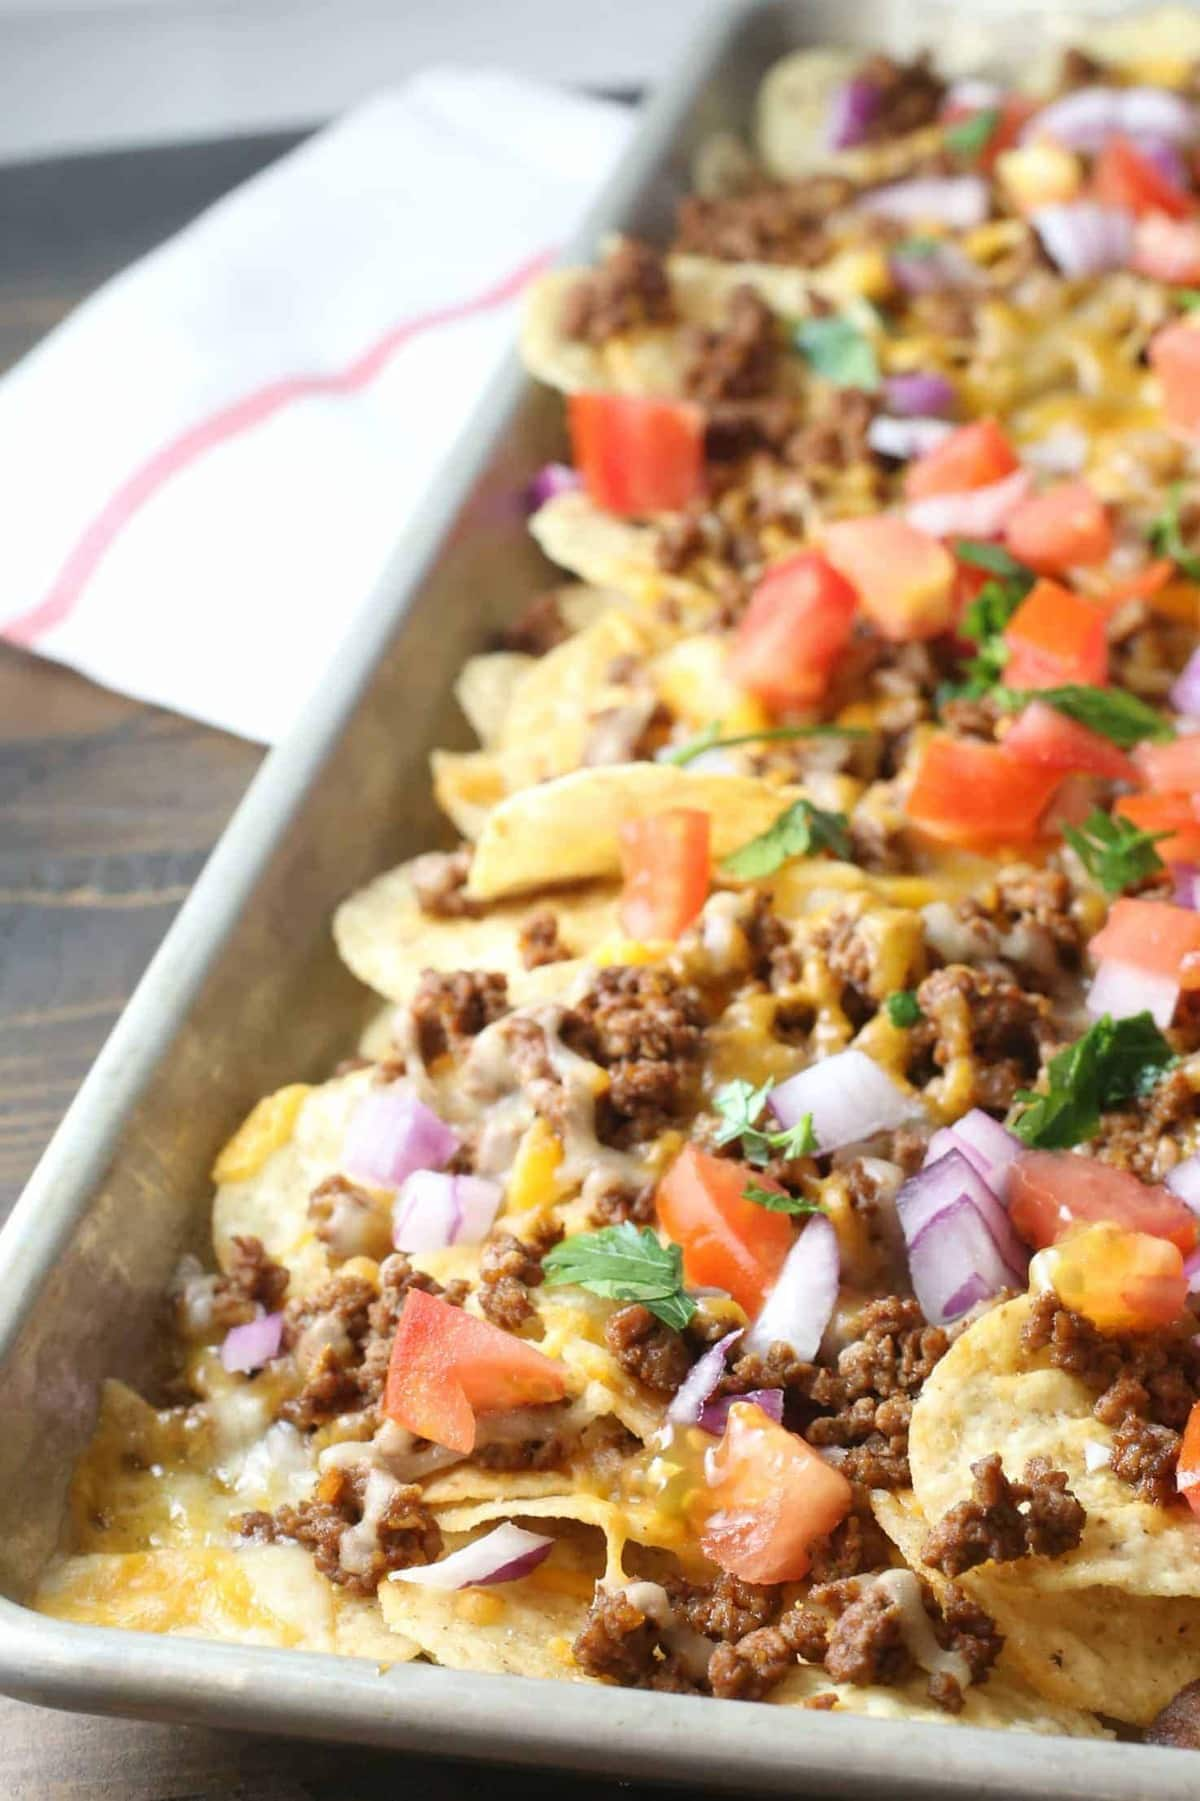 How to make sheet pan nachos